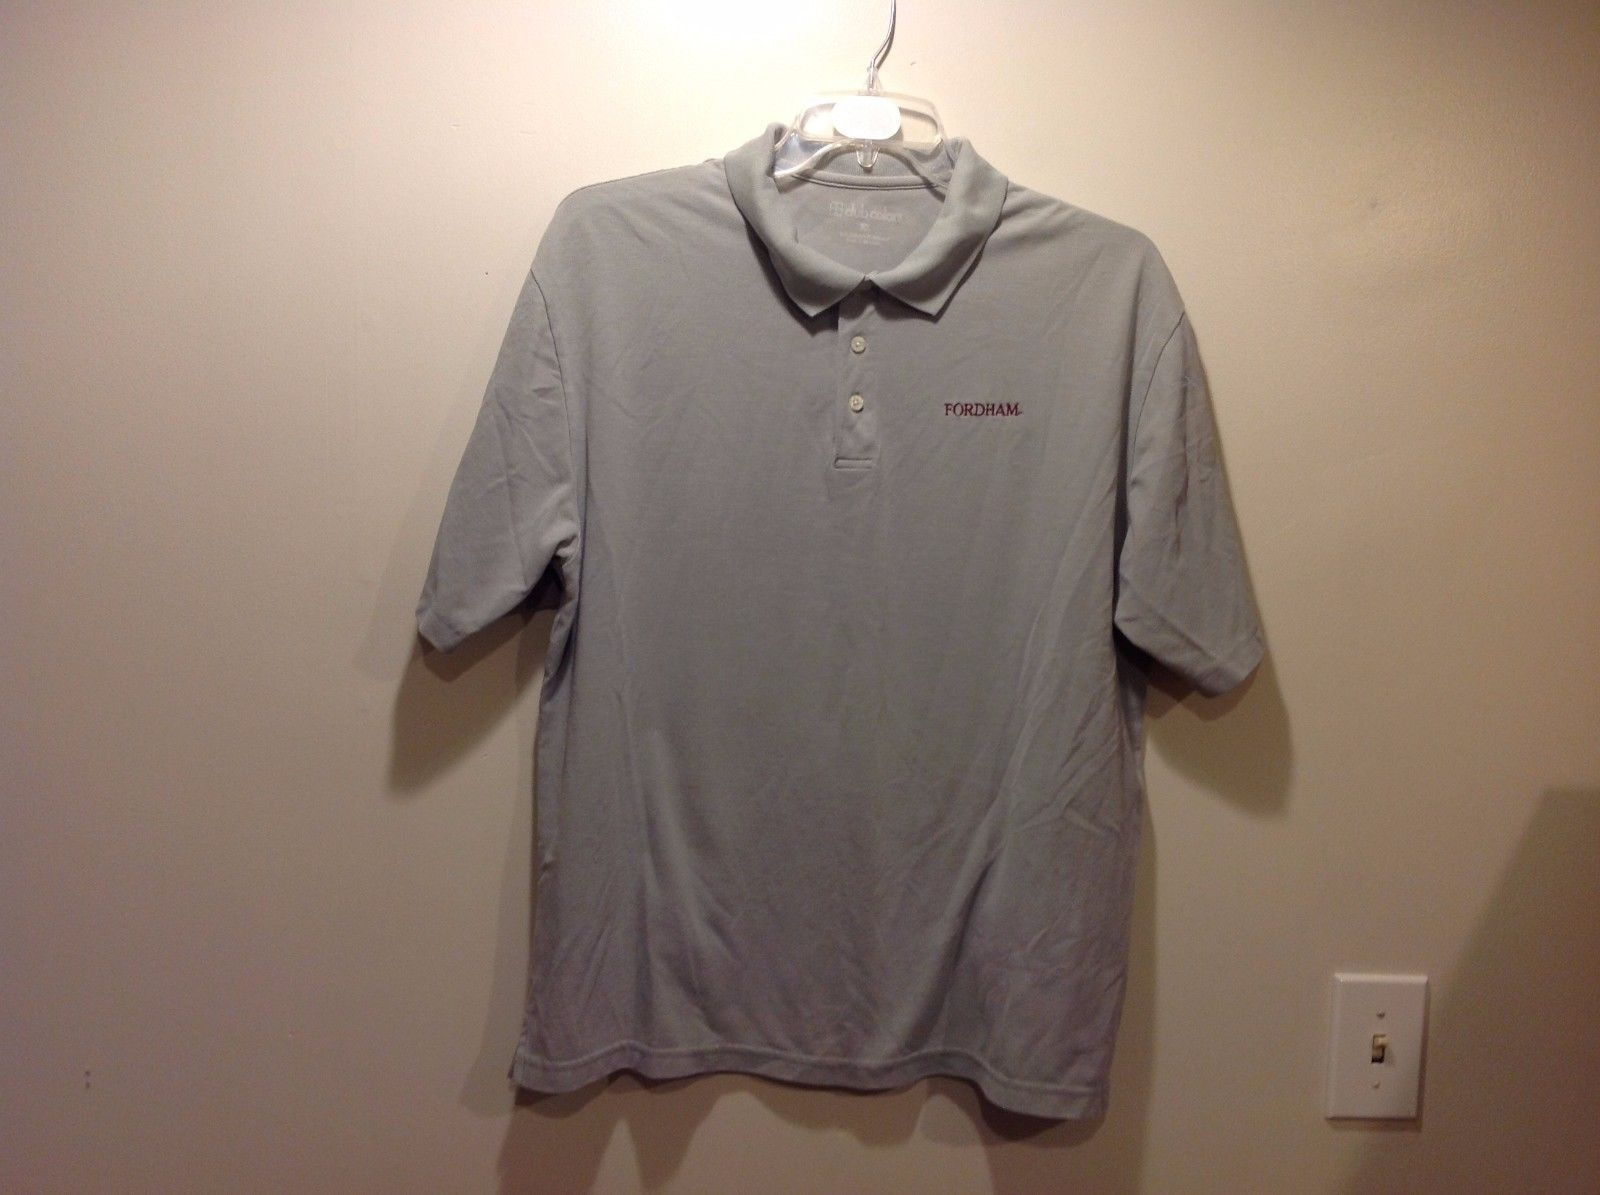 Club Colors Fordham POLO Lt Gray w Maroon Lettering T Shirt Sz XL